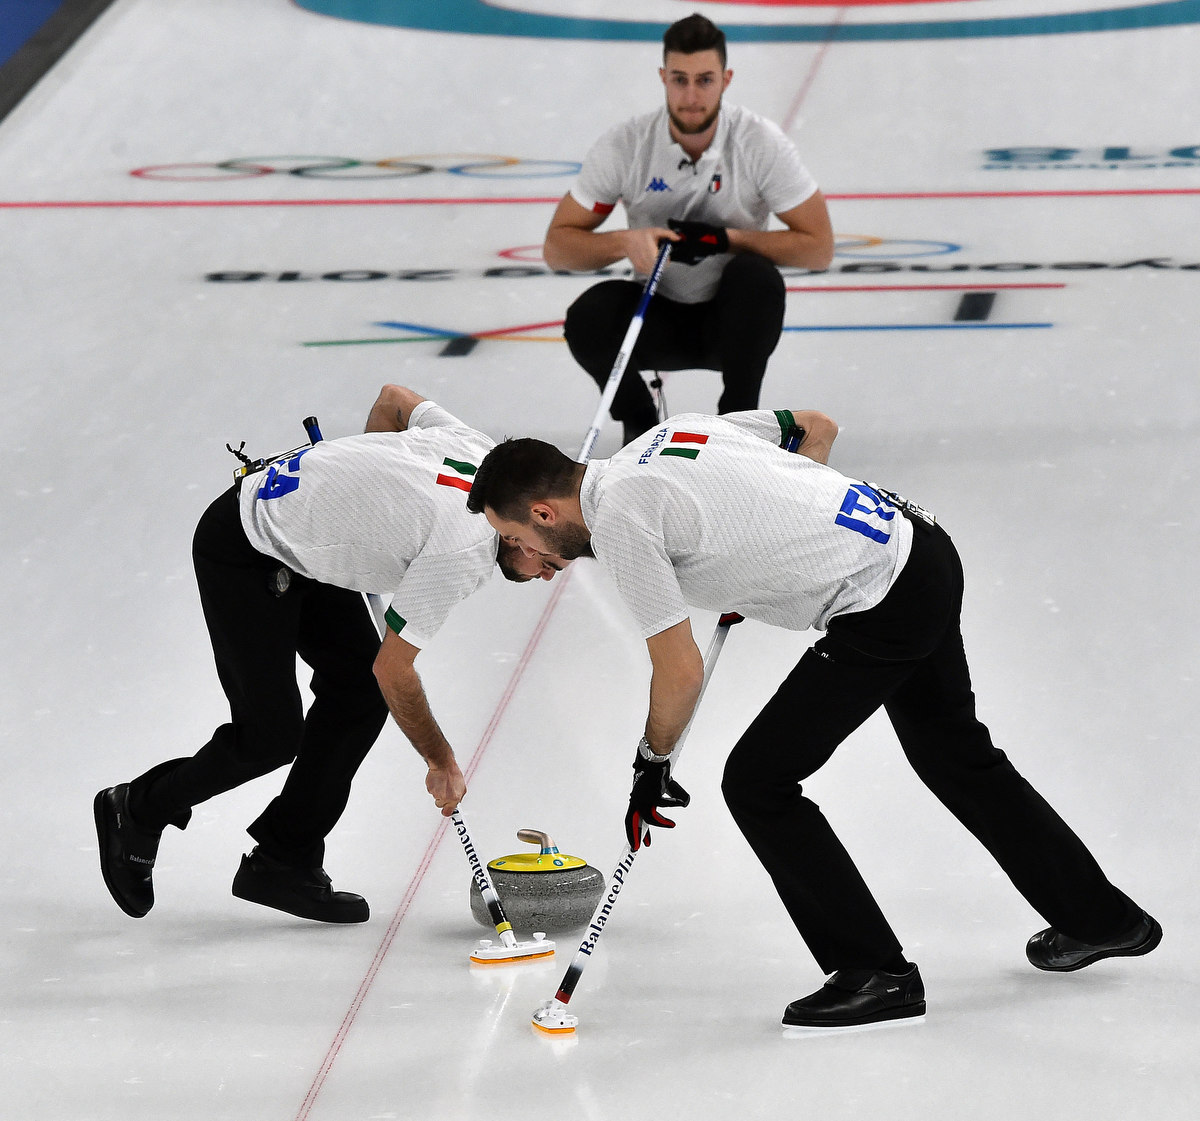 025curling_mezzelani_gmt_20180214_1160956629